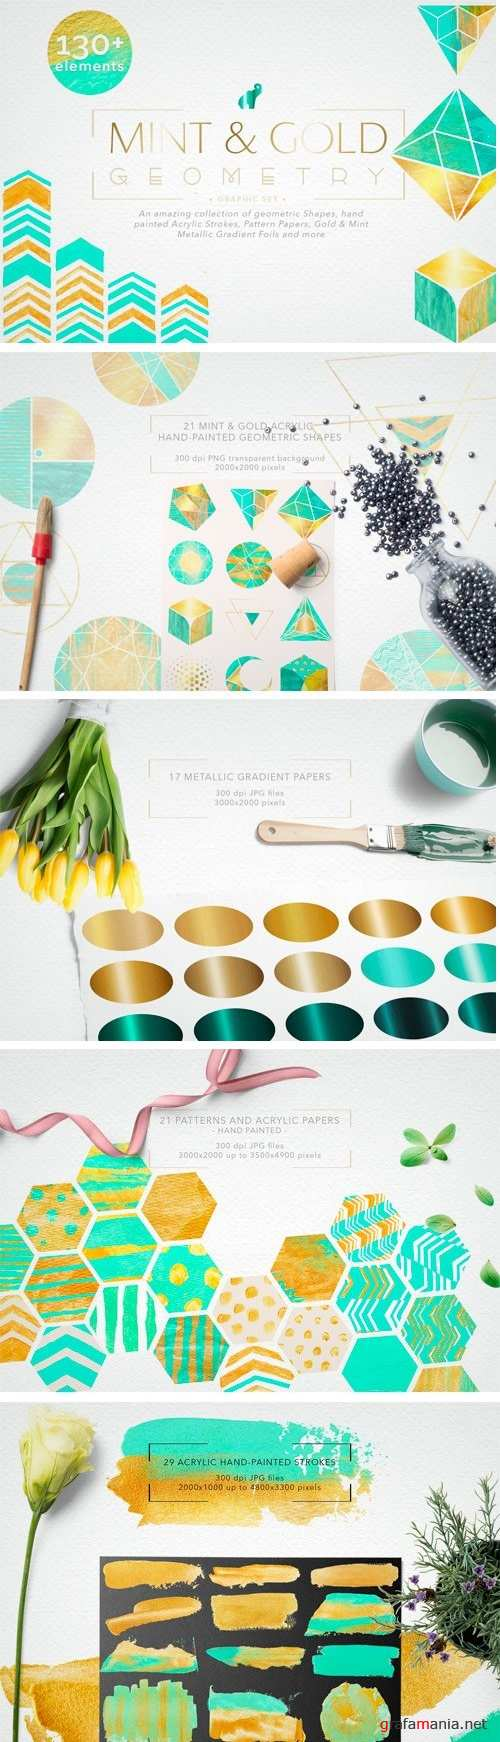 Mint & Gold Geometry Collection 1709777